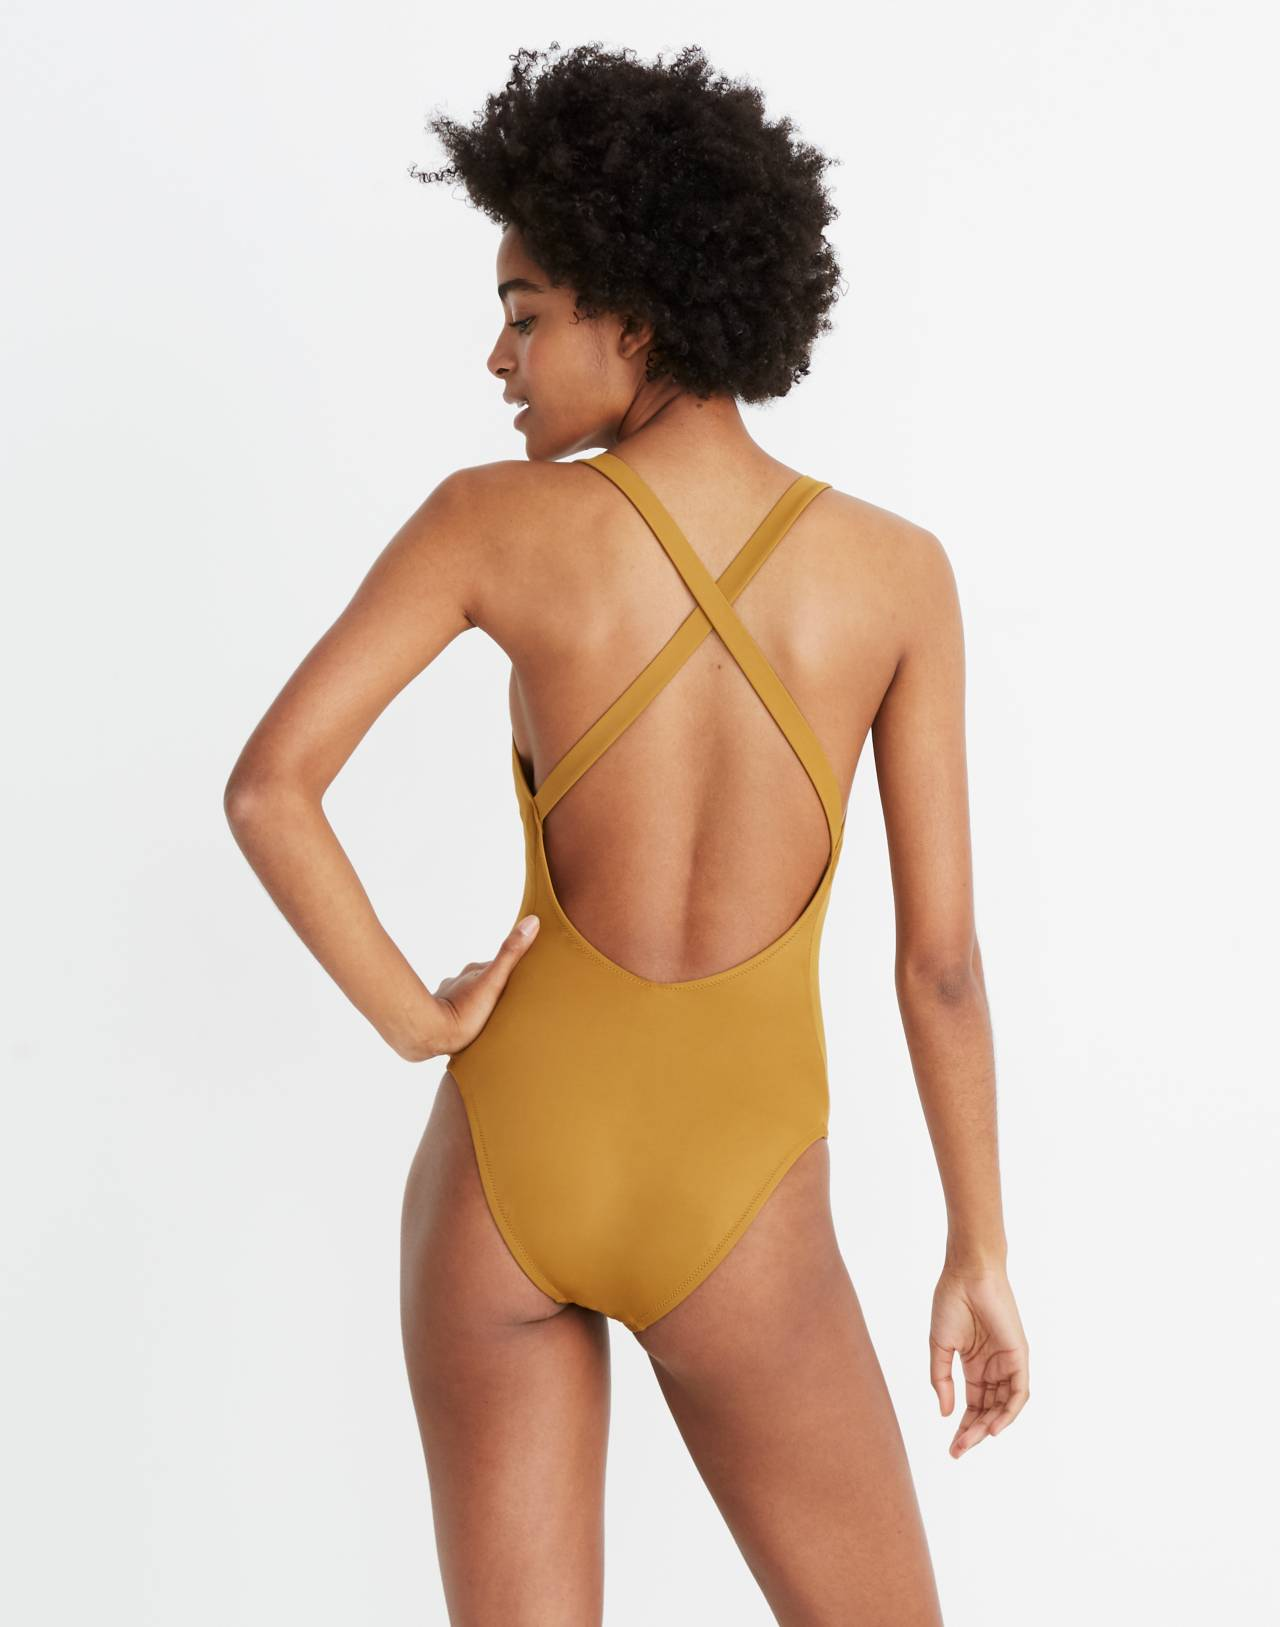 Madewell Second Wave Crisscross One-Piece Swimsuit in distant olive image 2